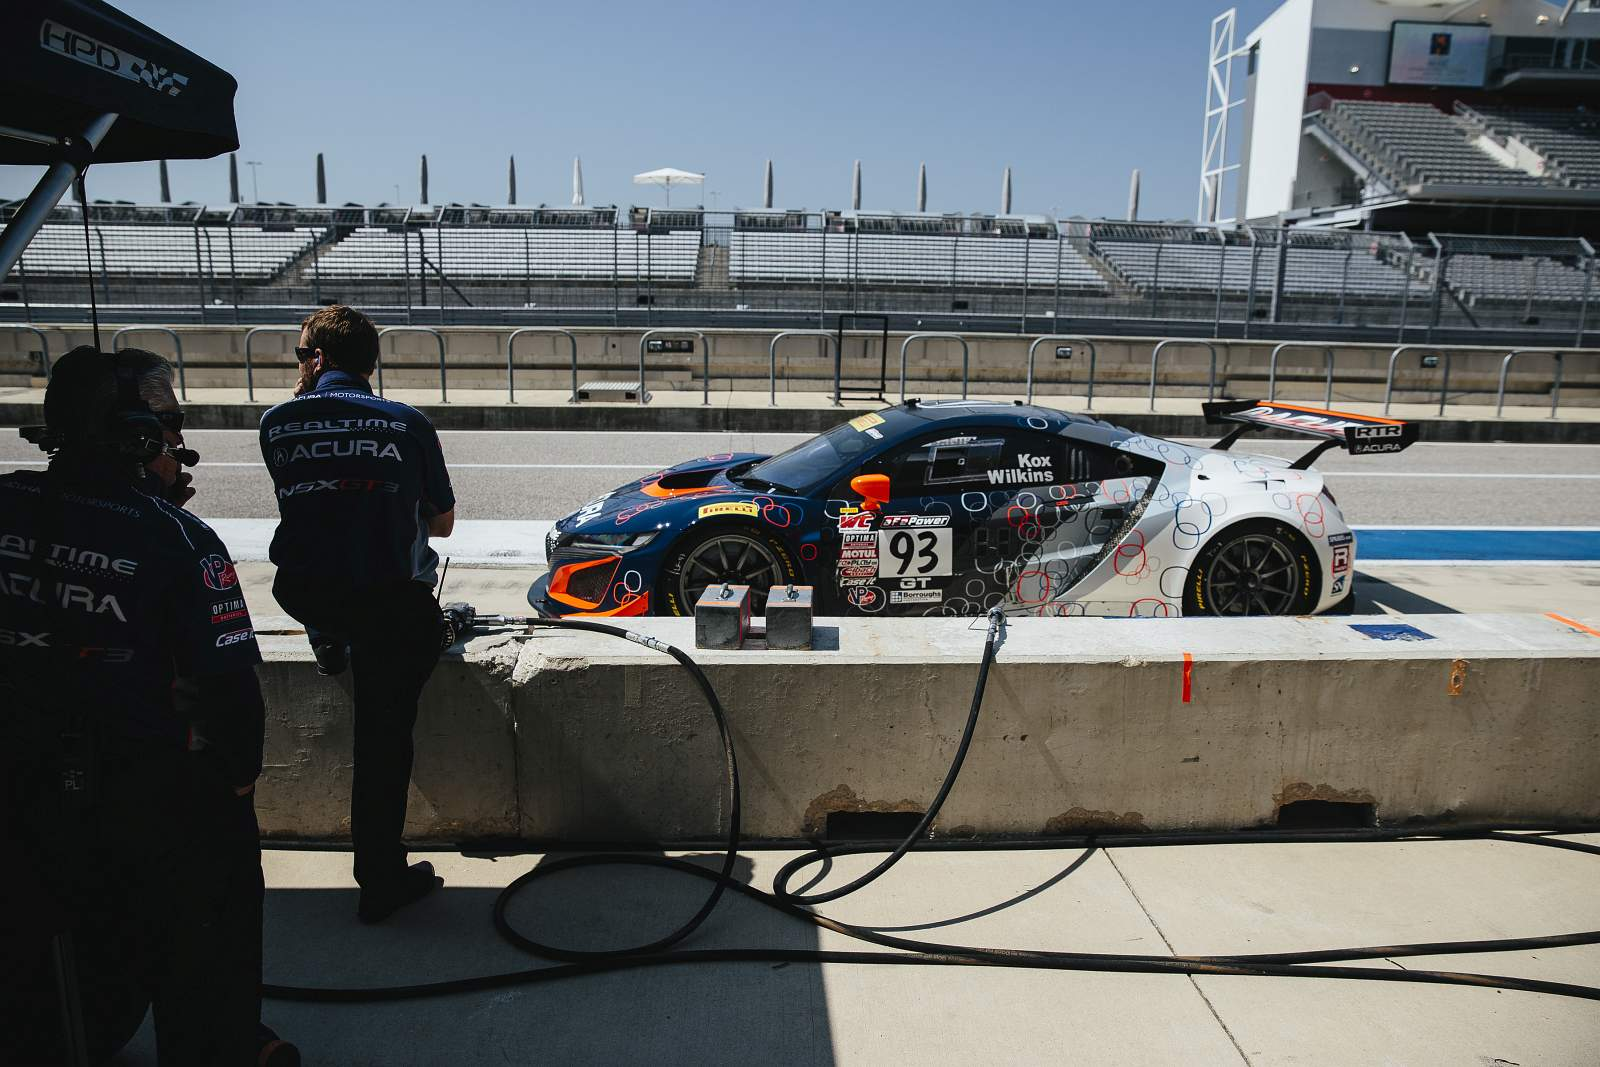 peter-kox-realtime-racing-pirelli-world-challenge-cota--020